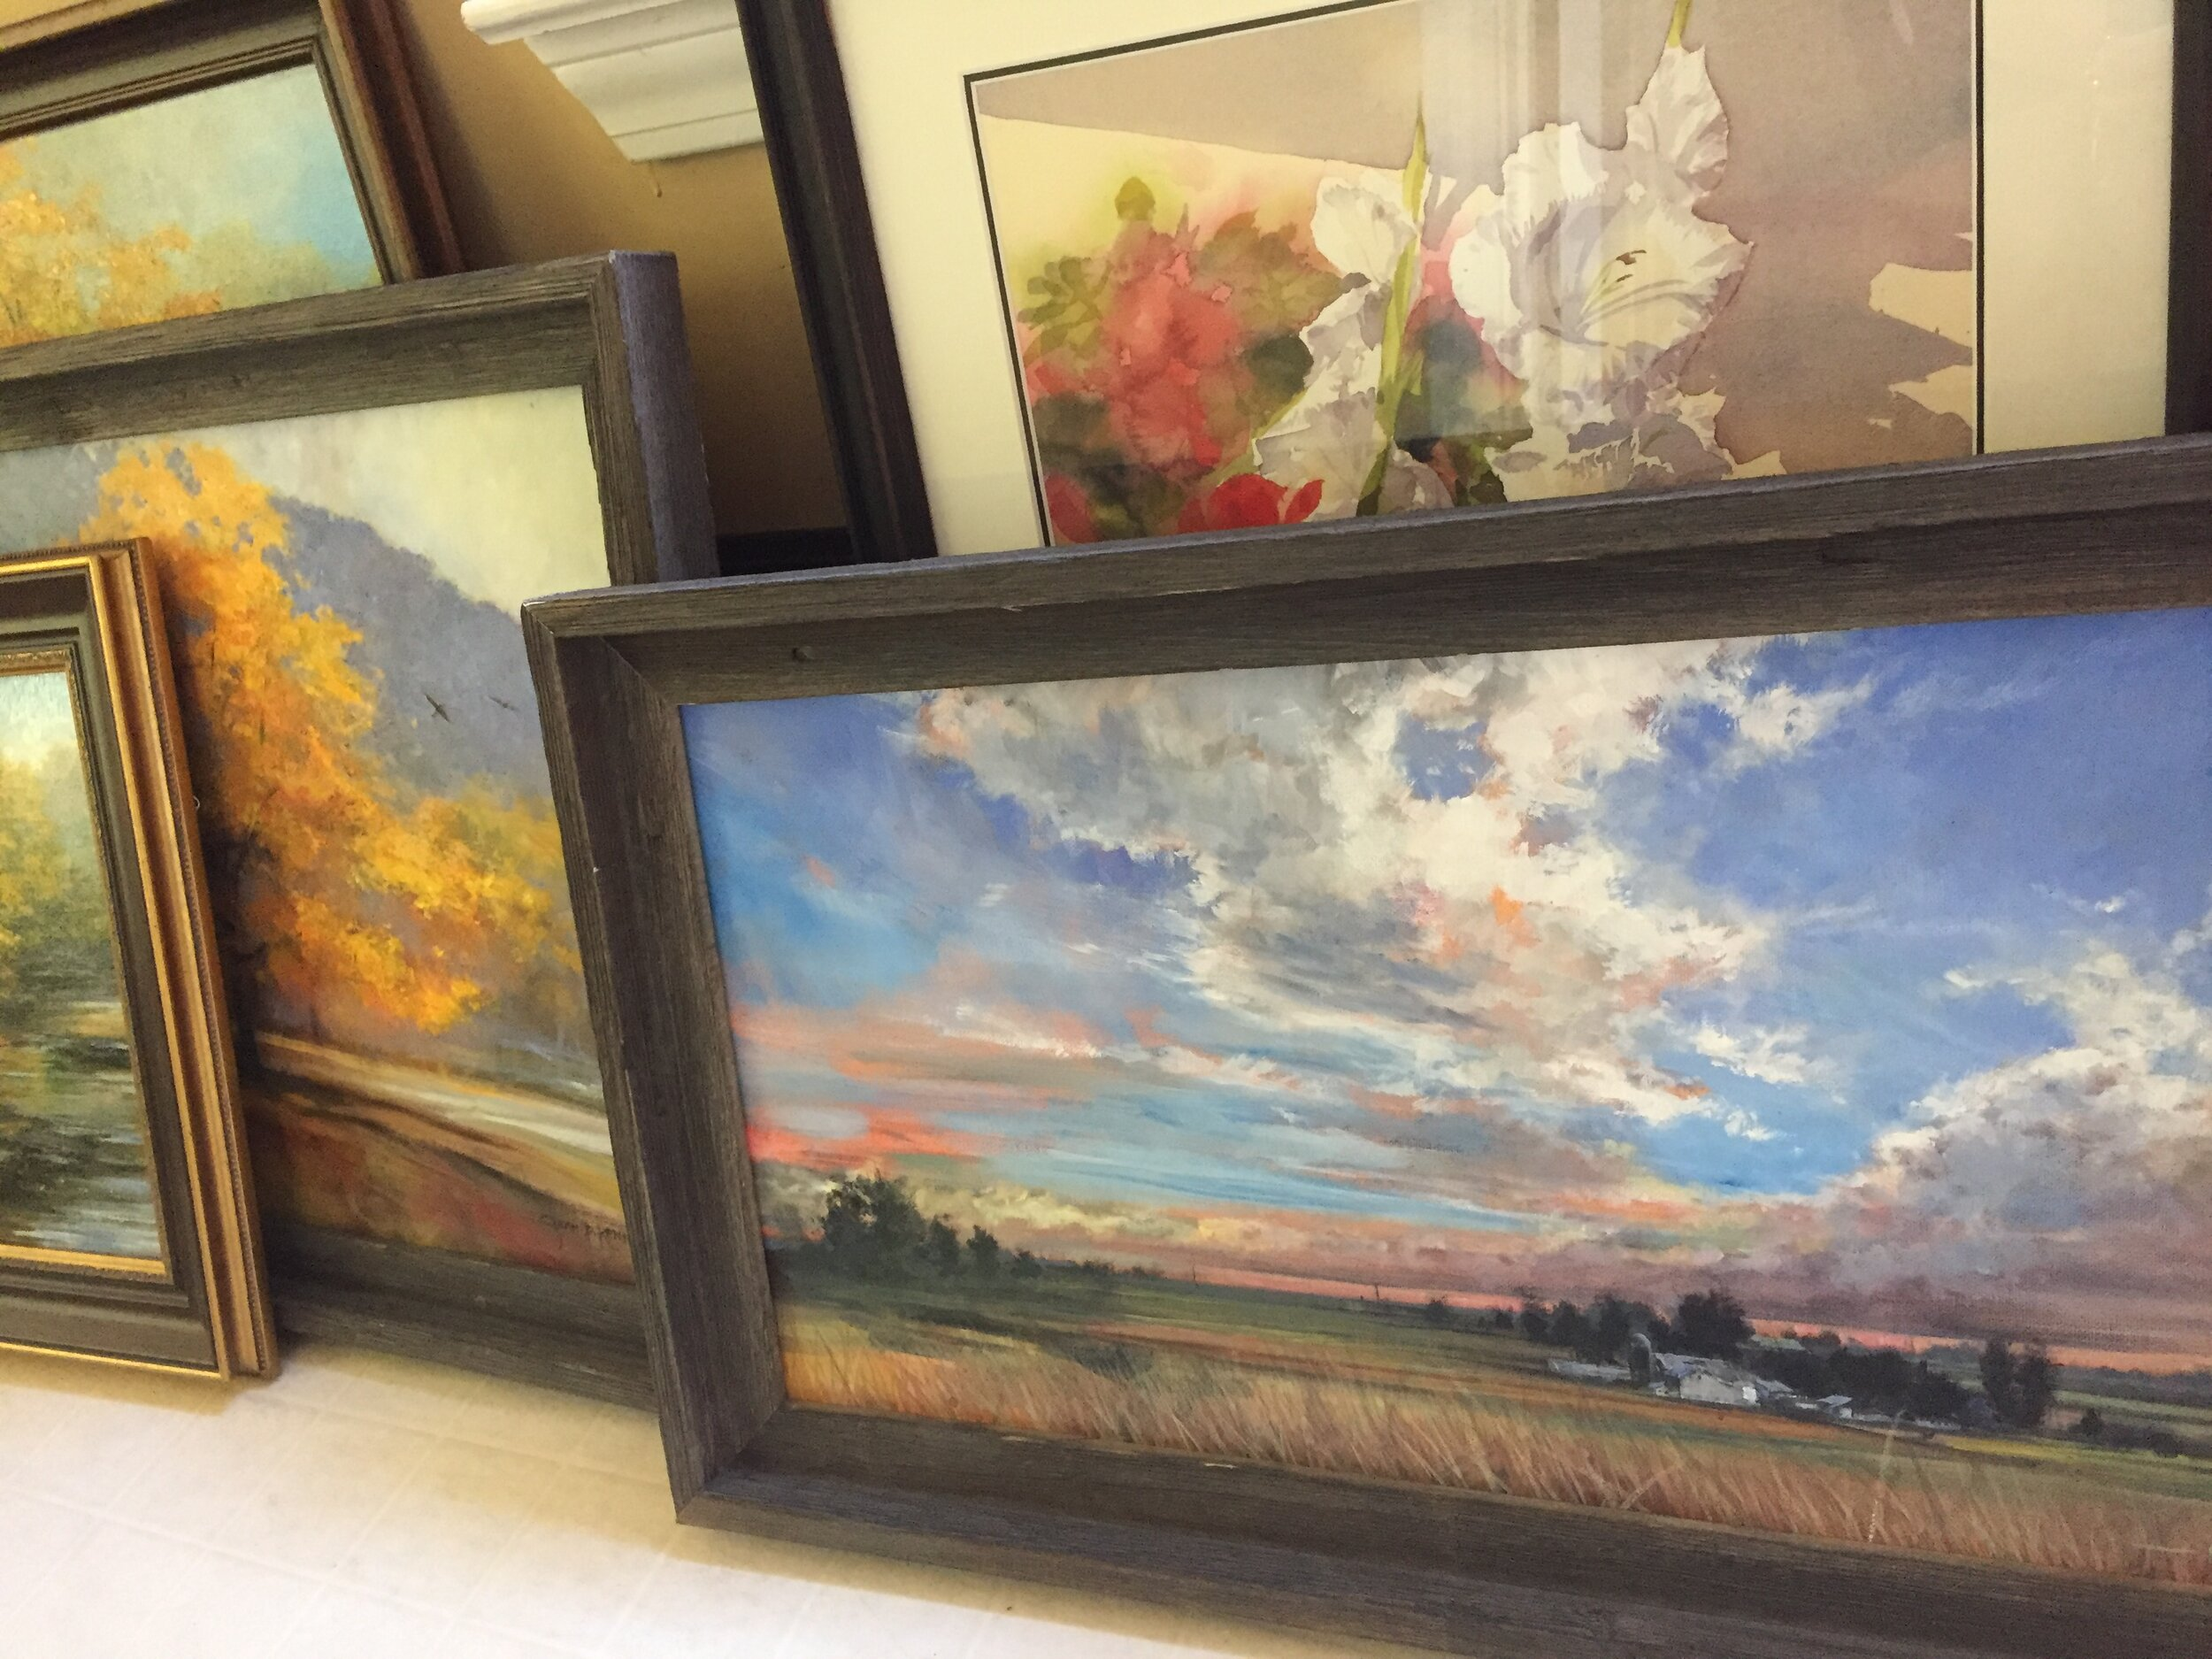 These are some of the paintings that Turning Leaf Gallery will offer in the coming fall season. They will be the newest gallery to represent my work! Check back often for more!